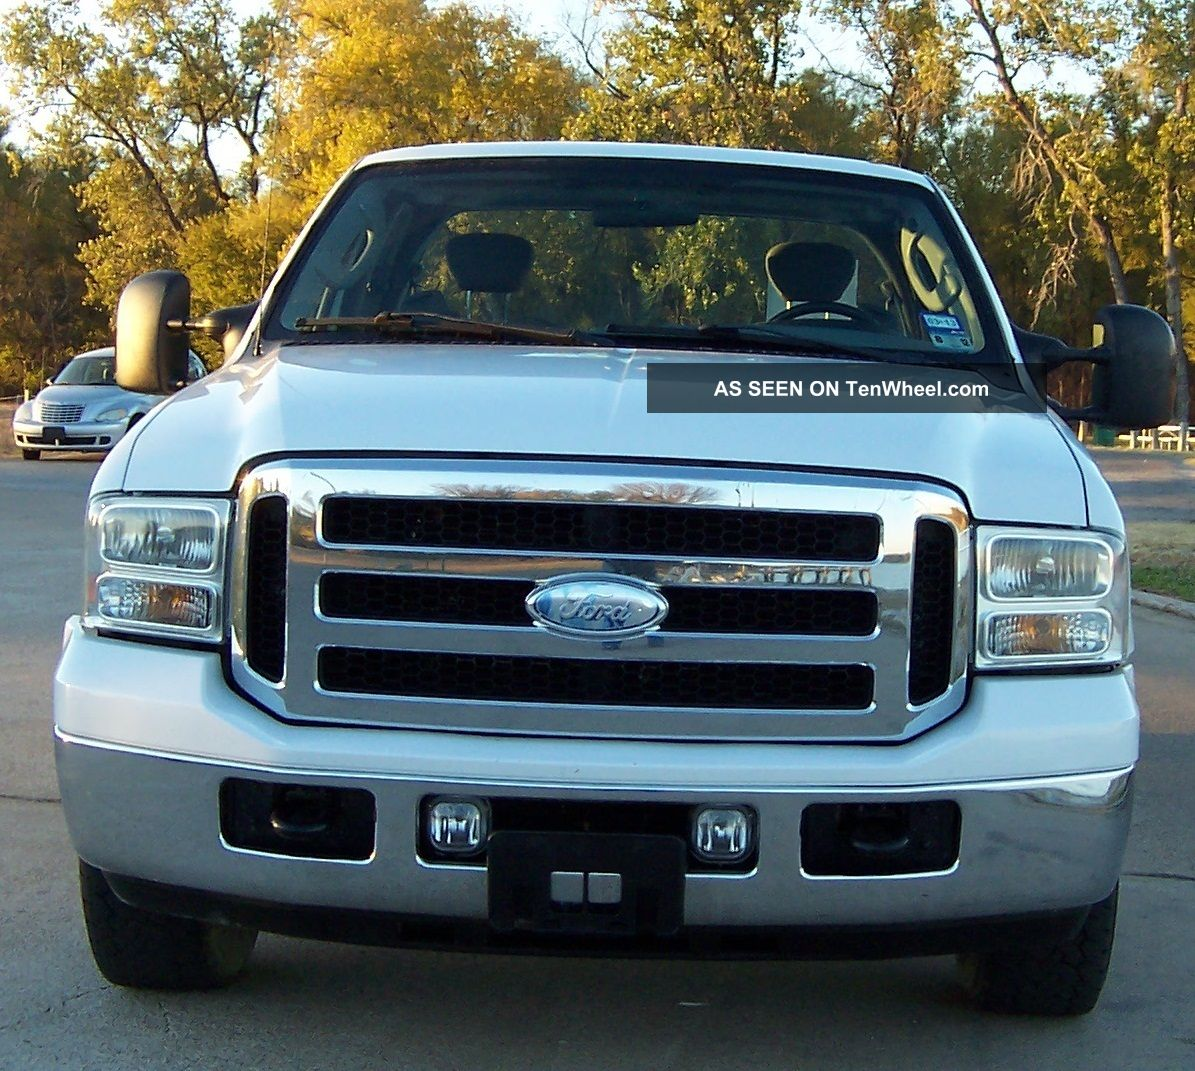 2007 Ford F250 Xlt Duty Cab With 6. 0 Liter Power Stroke